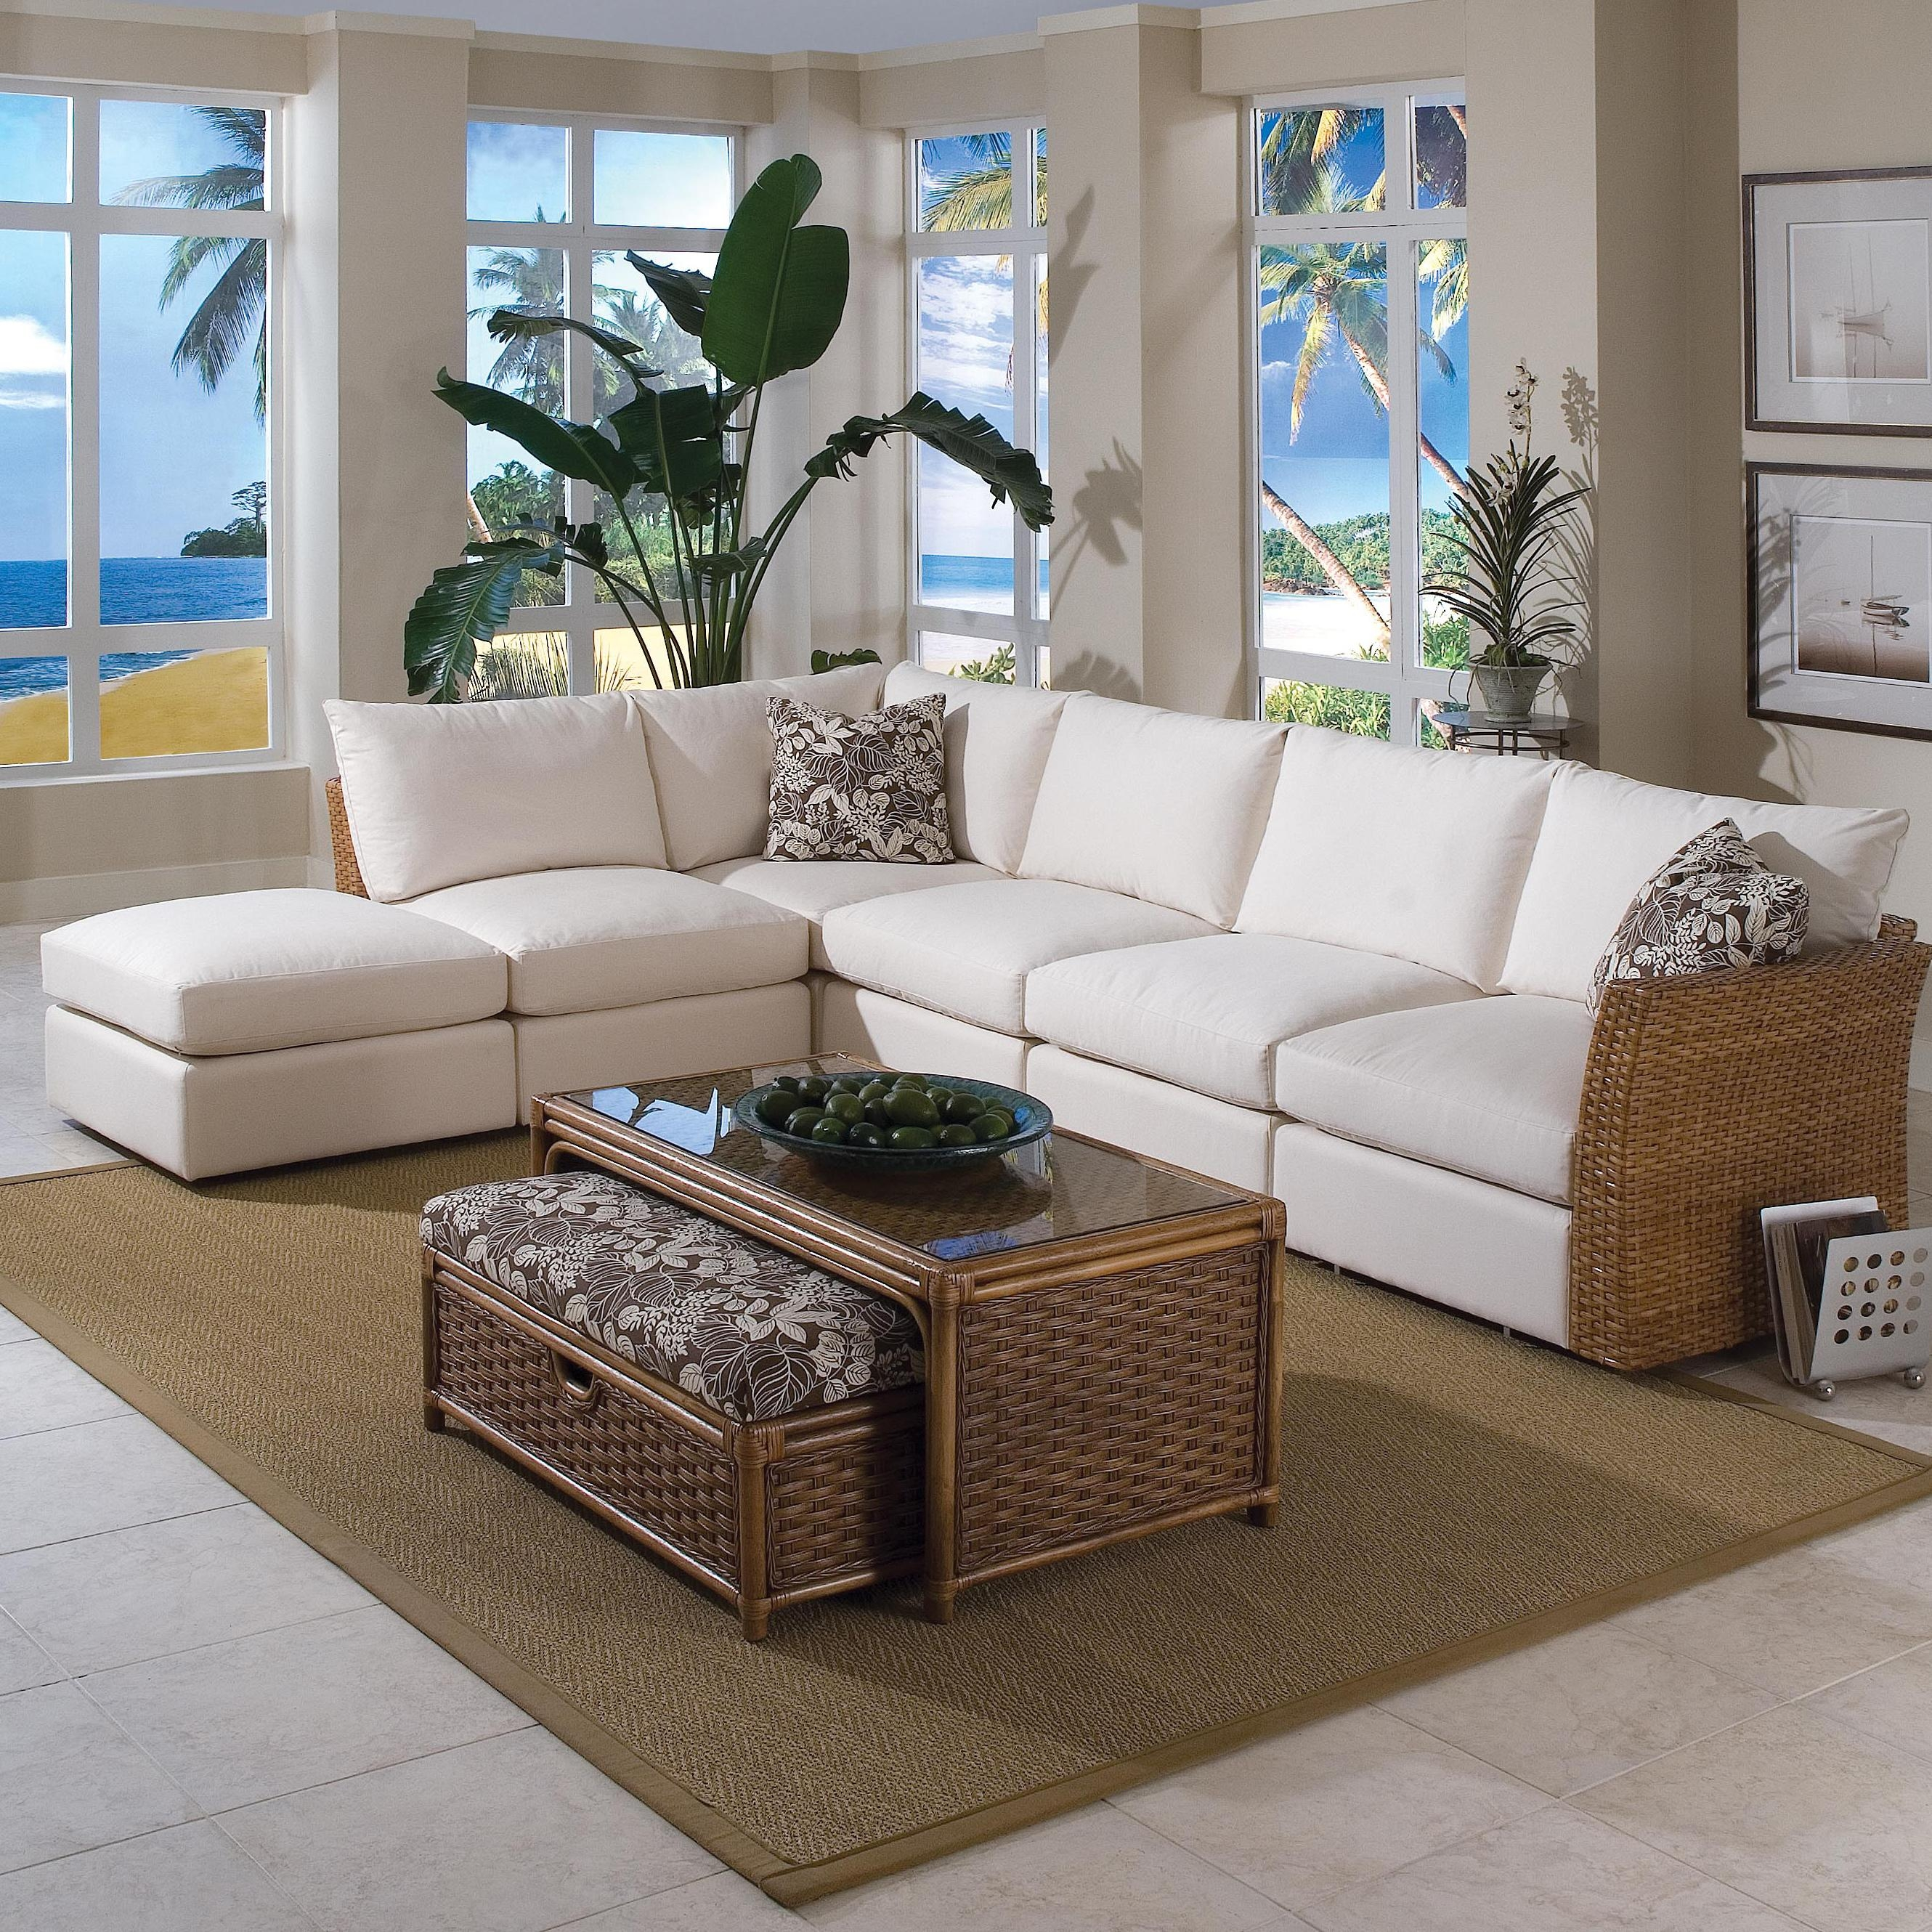 Braxton Sectional Sofa Perfect Braxton Sectional Sofa 40